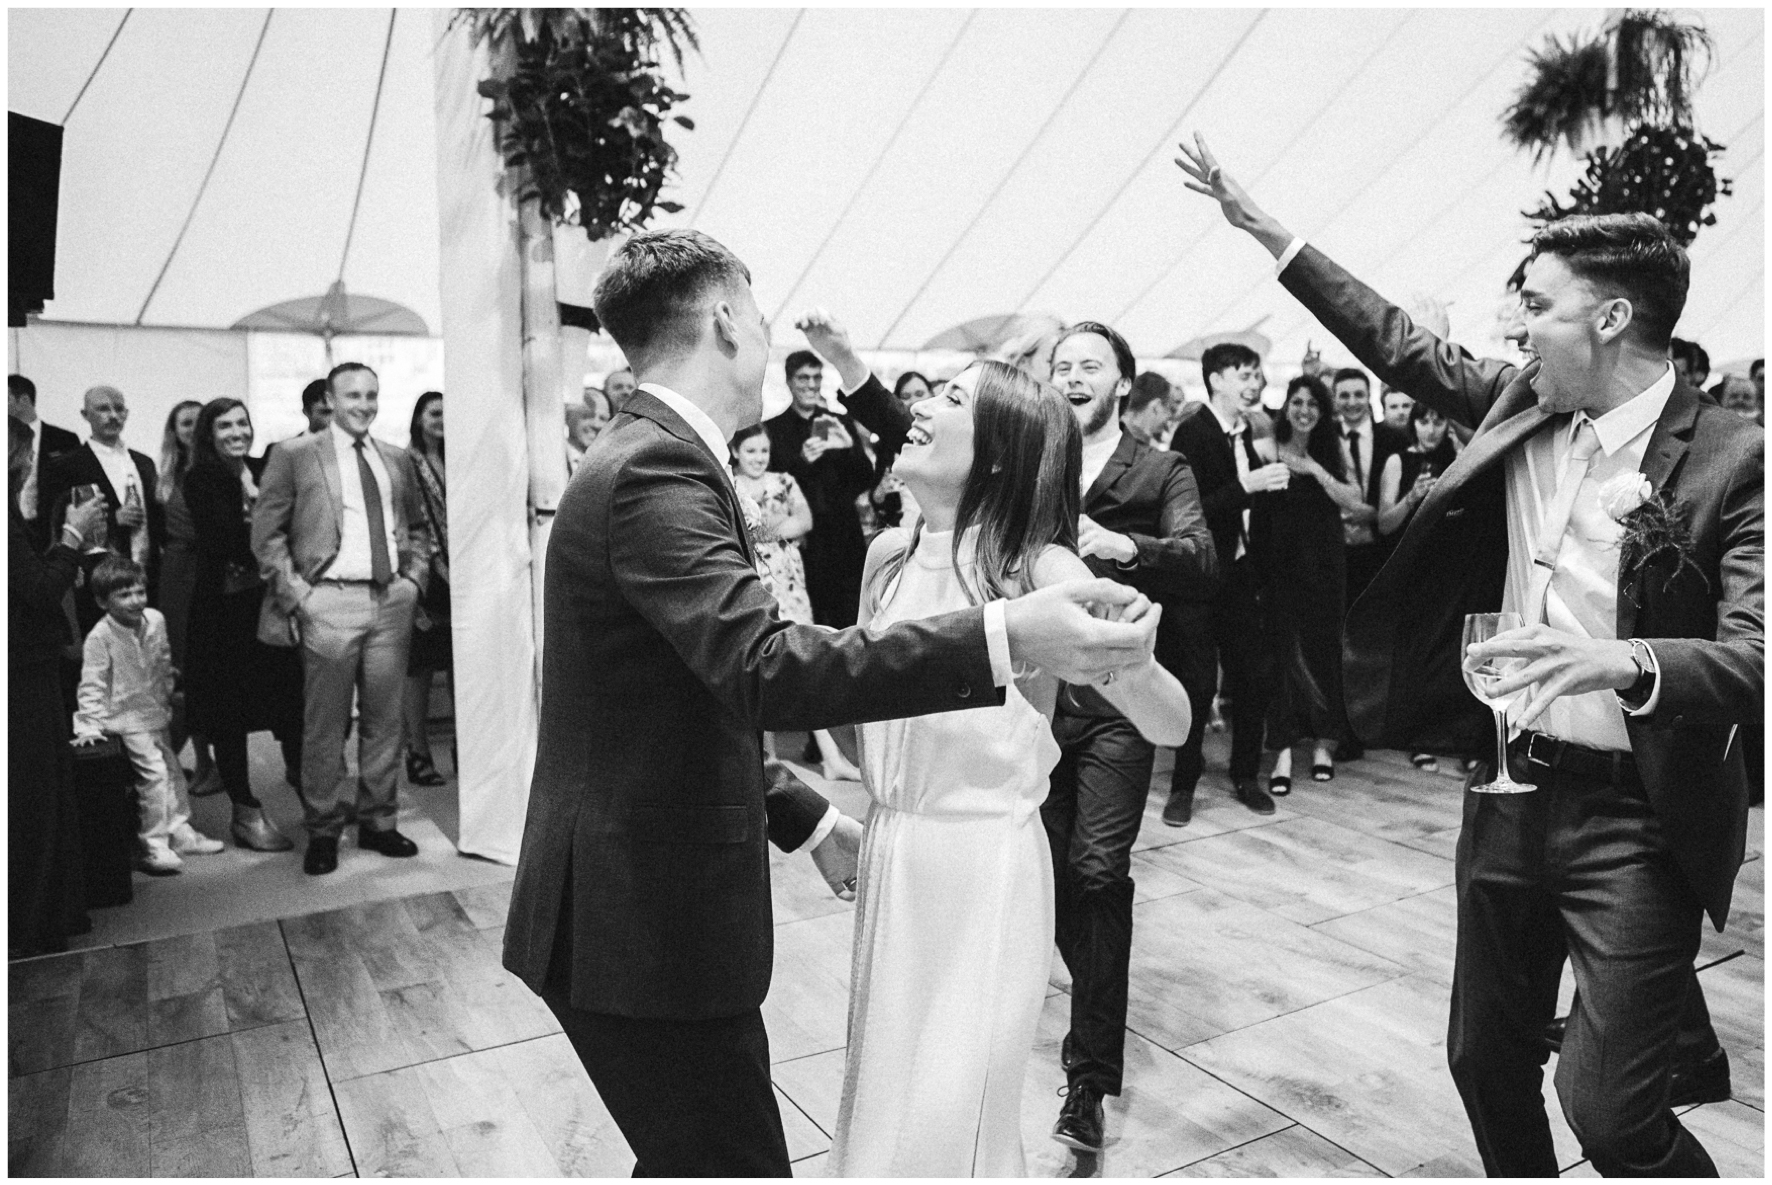 glamping wedding, Lucy Davenport Photography, home wedding, Sperry tent, PapaKata, first dance, bride and groom